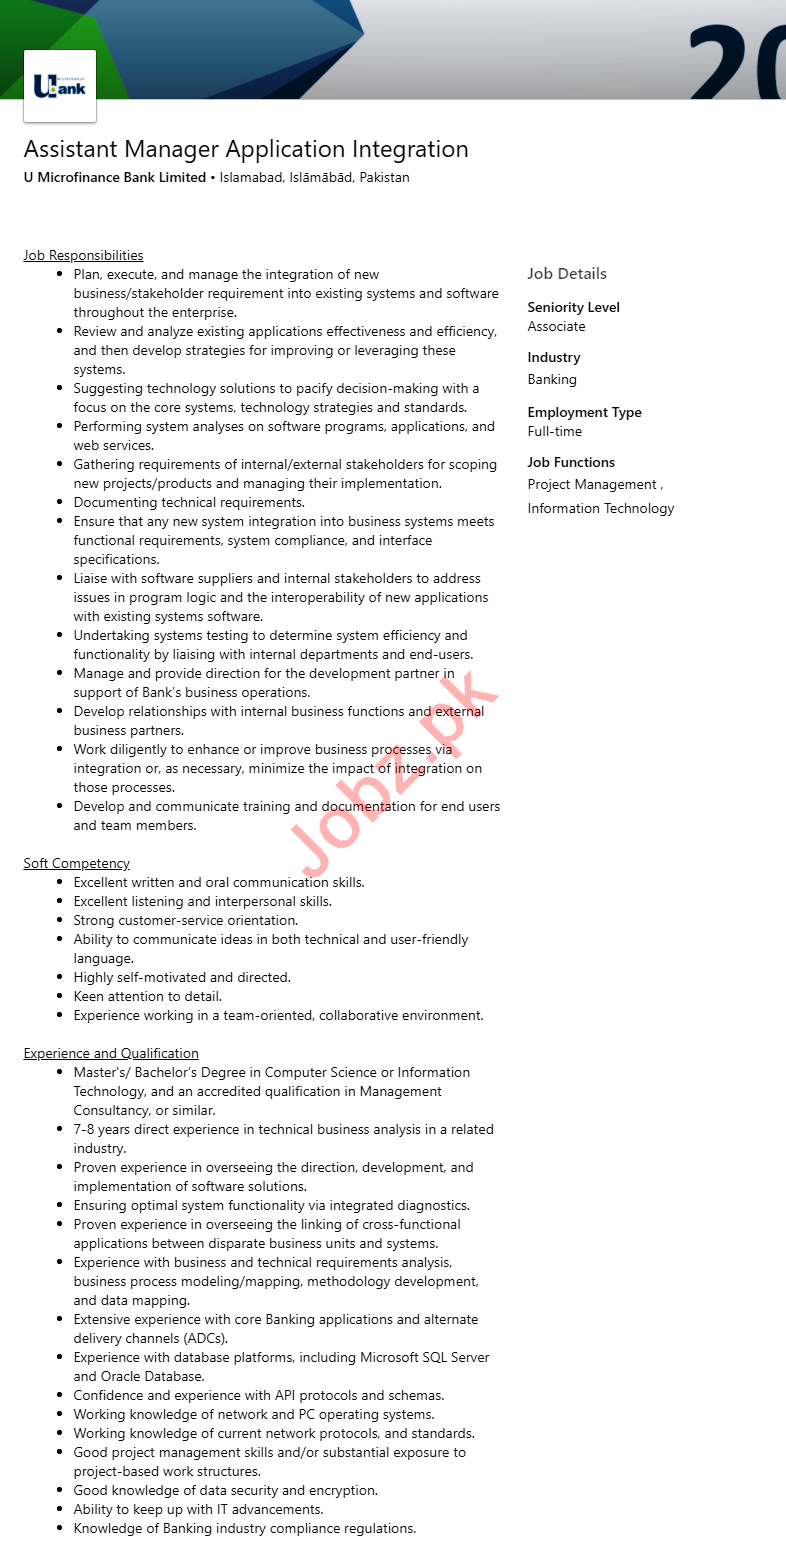 Assistant Manager Application Integration Jobs 2020